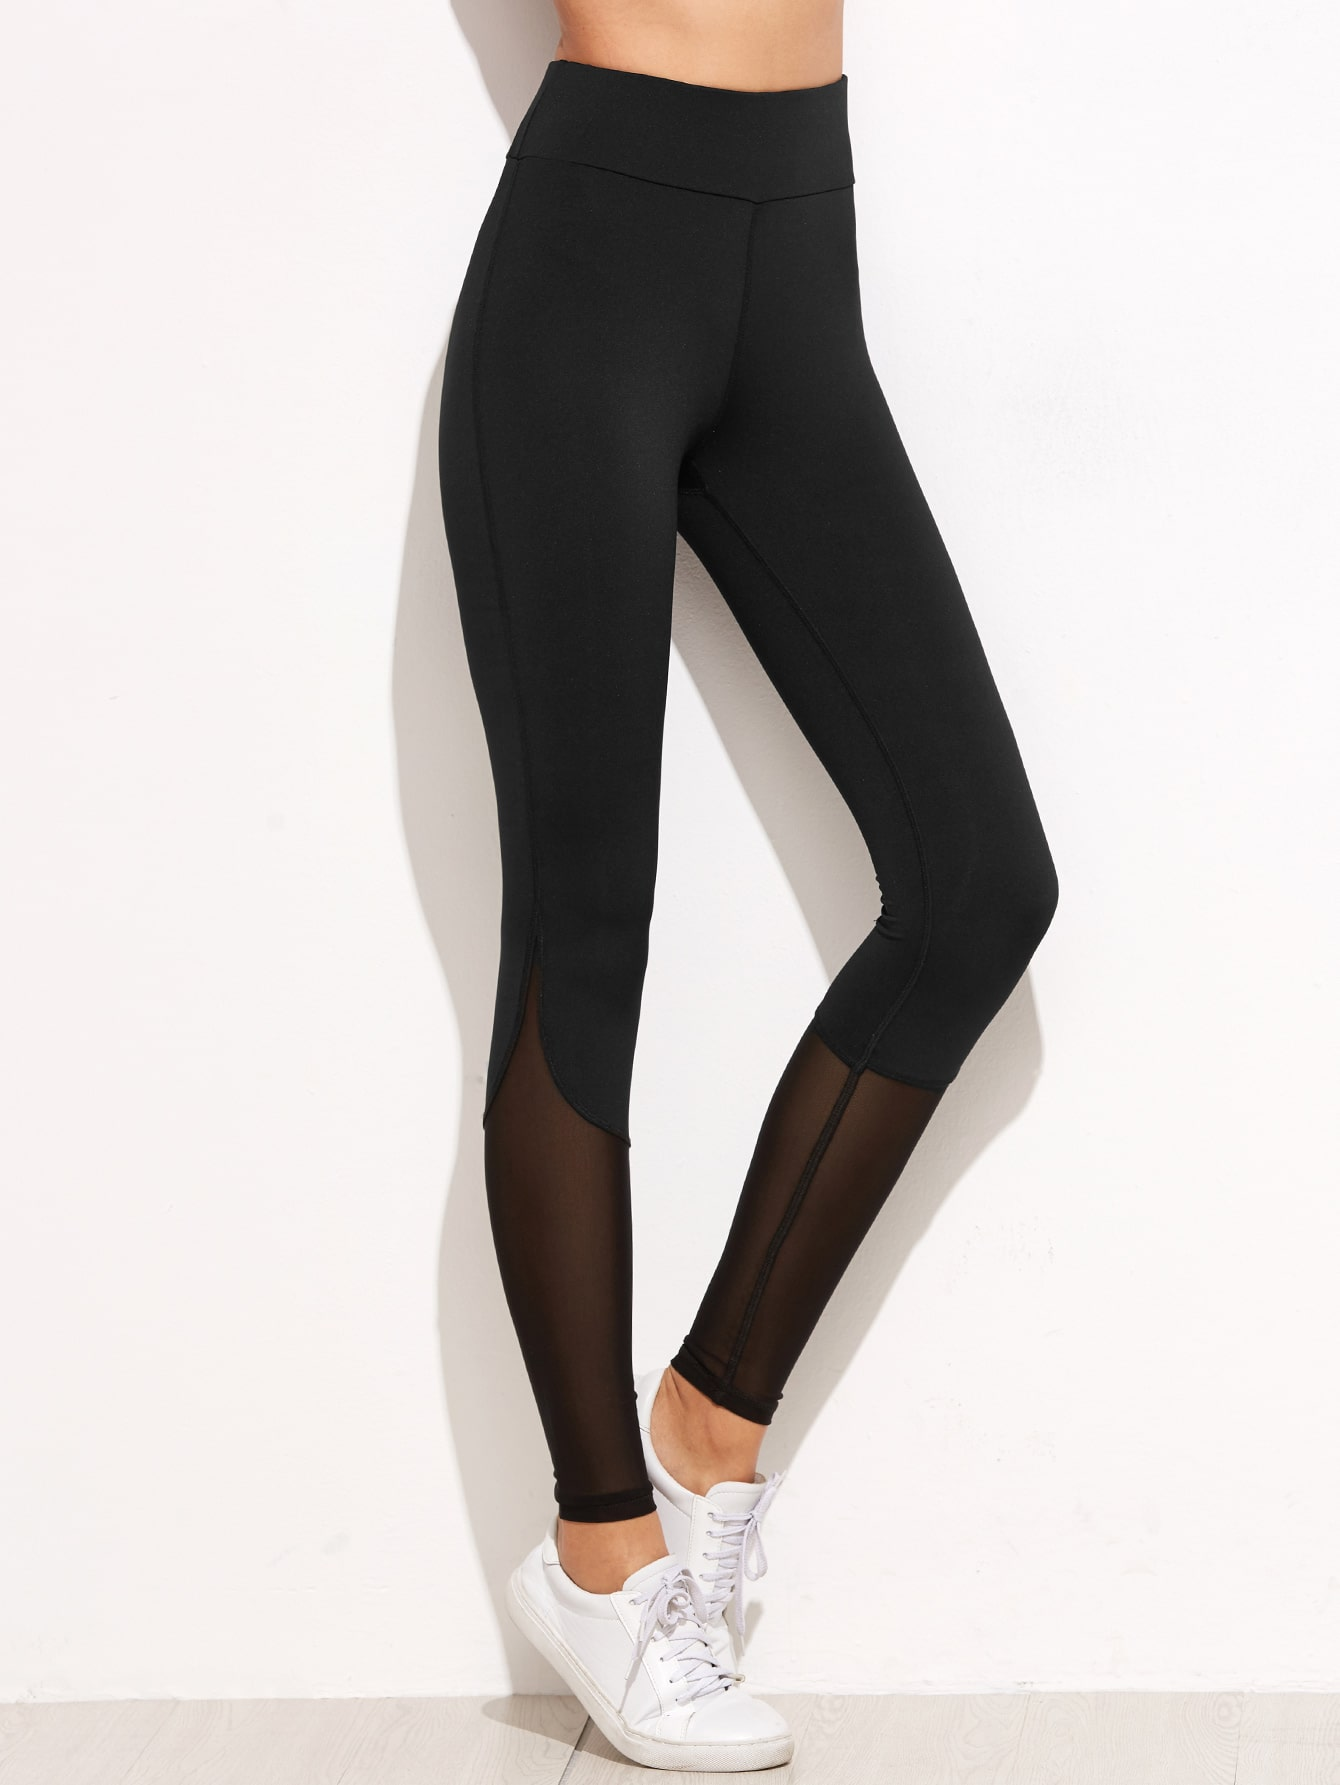 033ff0e74985e5 Black Contrast Mesh Leggings EmmaCloth-Women Fast Fashion Online